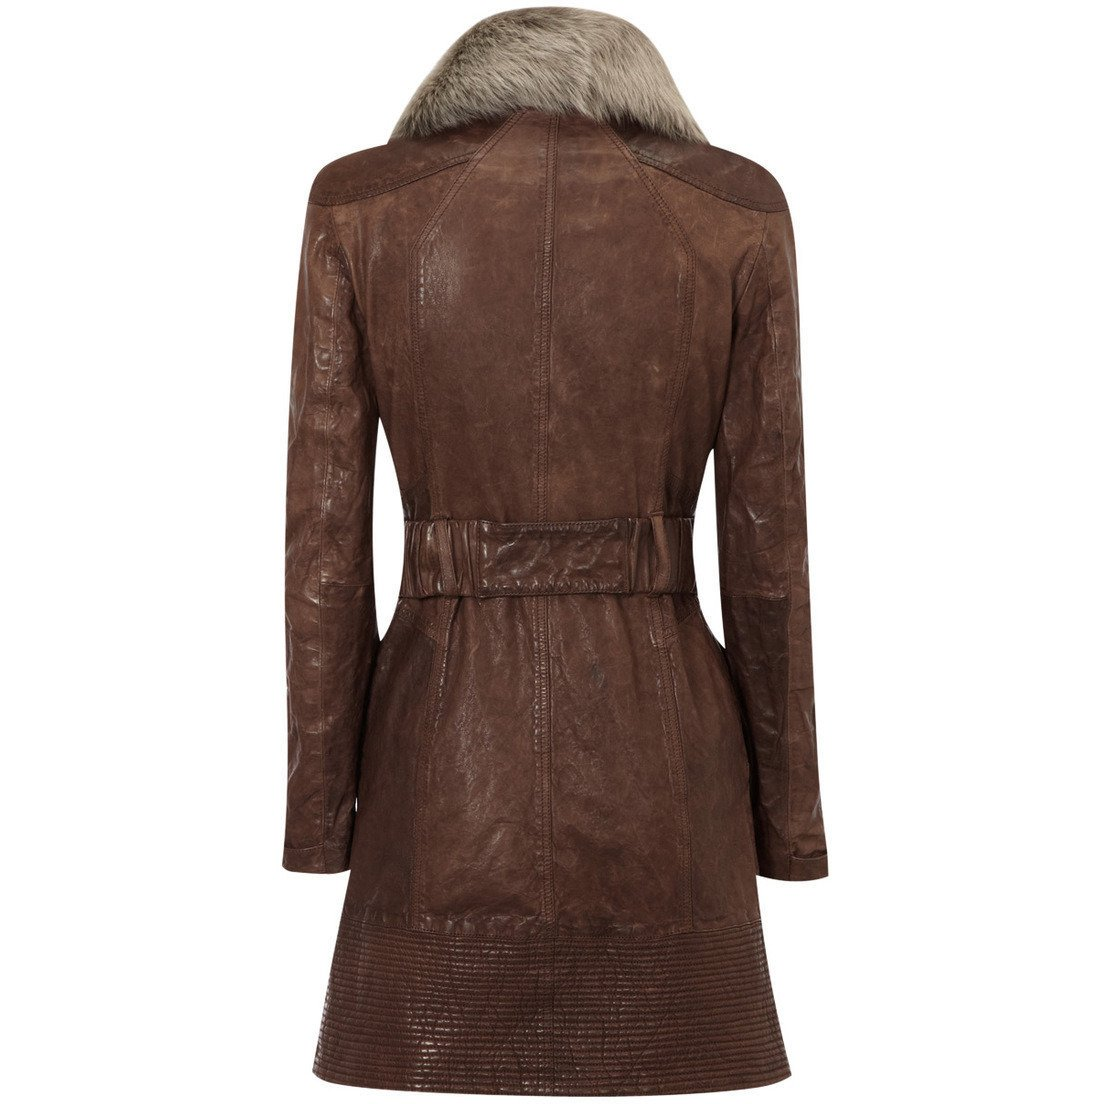 Womens Leather Coat - Womens Veg Leather Coat With Fur